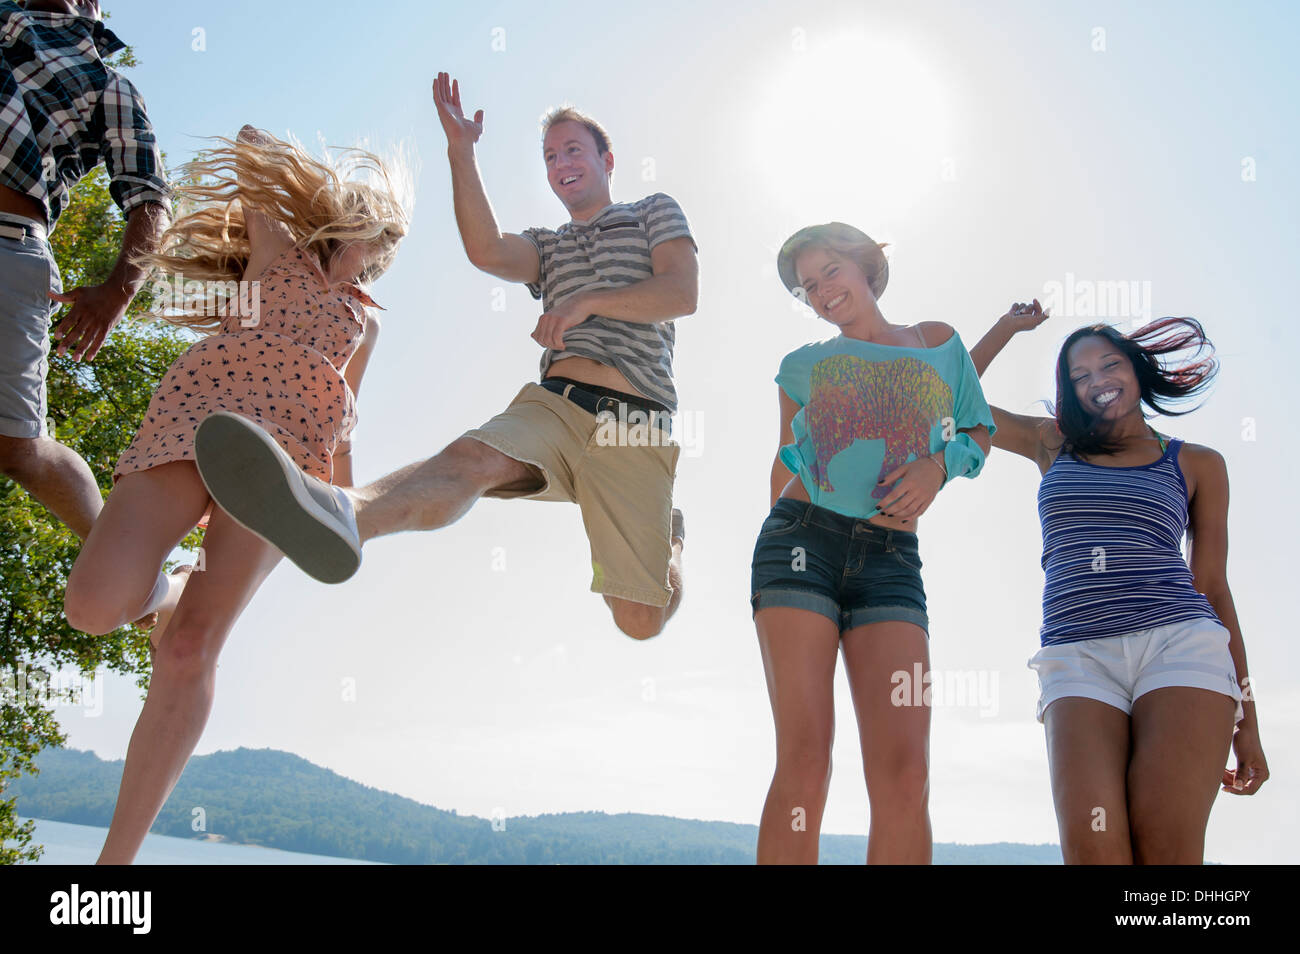 Group of friends wearing summer clothes, low angle - Stock Image